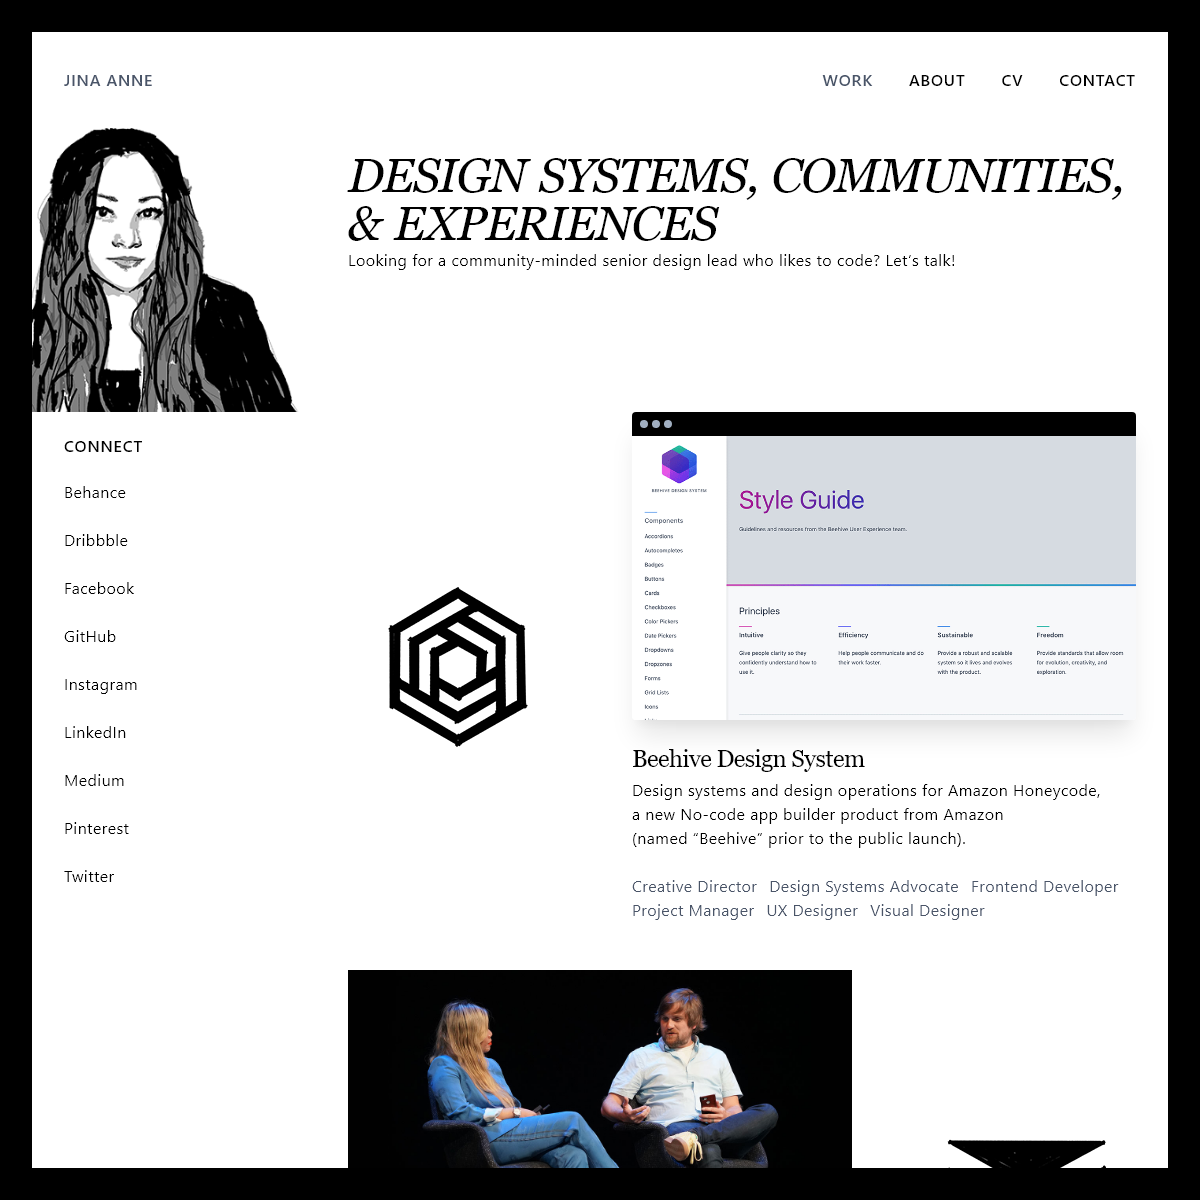 Design Systems, Communities, & Experiences - Jina Anne